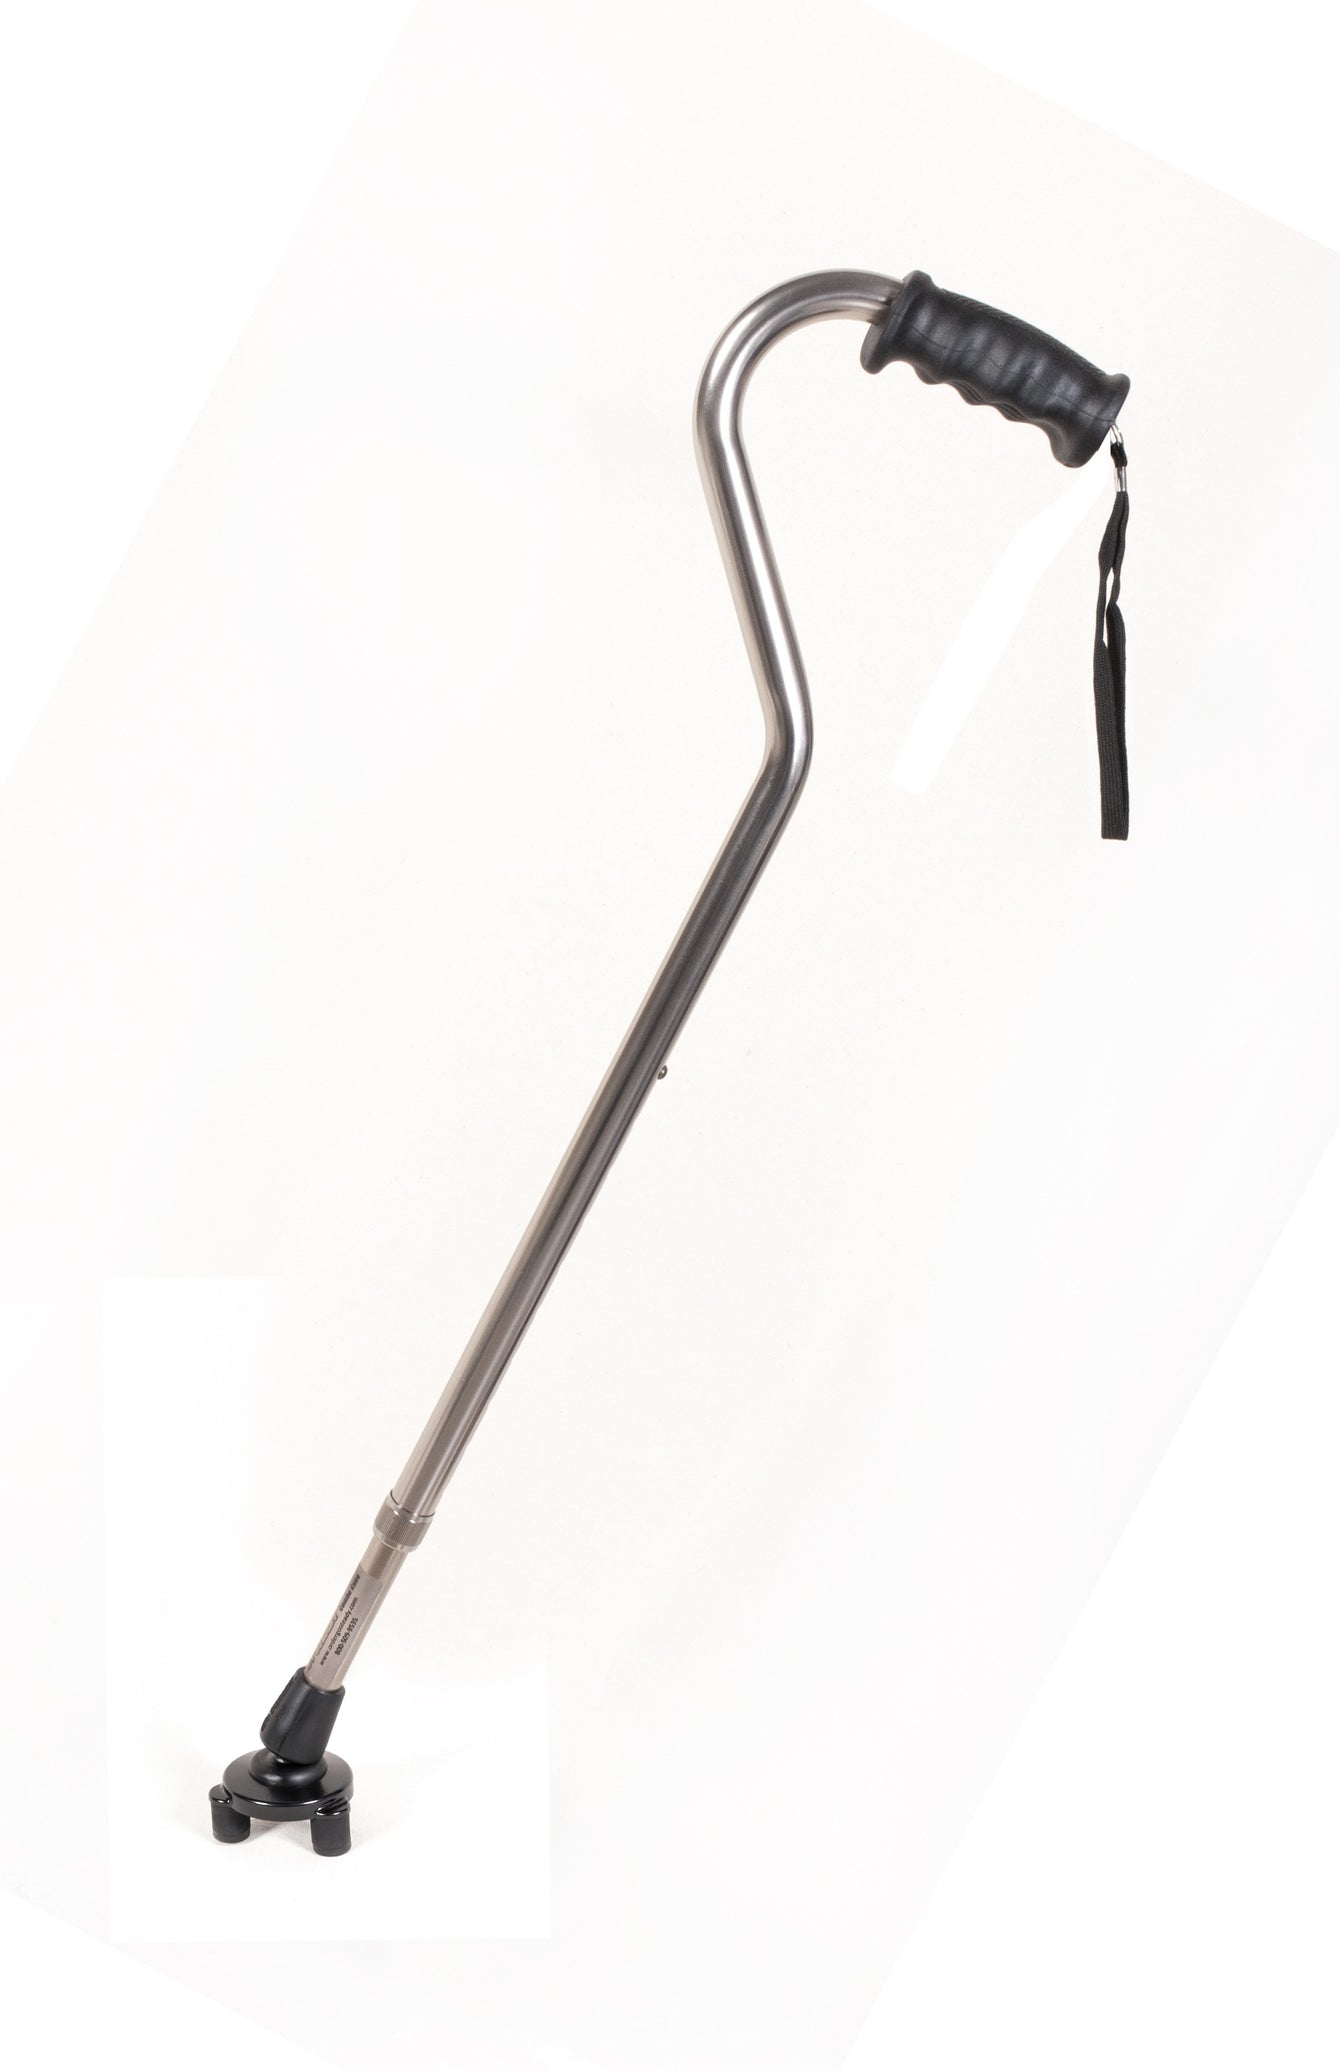 Go Steady Center Balance Tripod Walking Cane